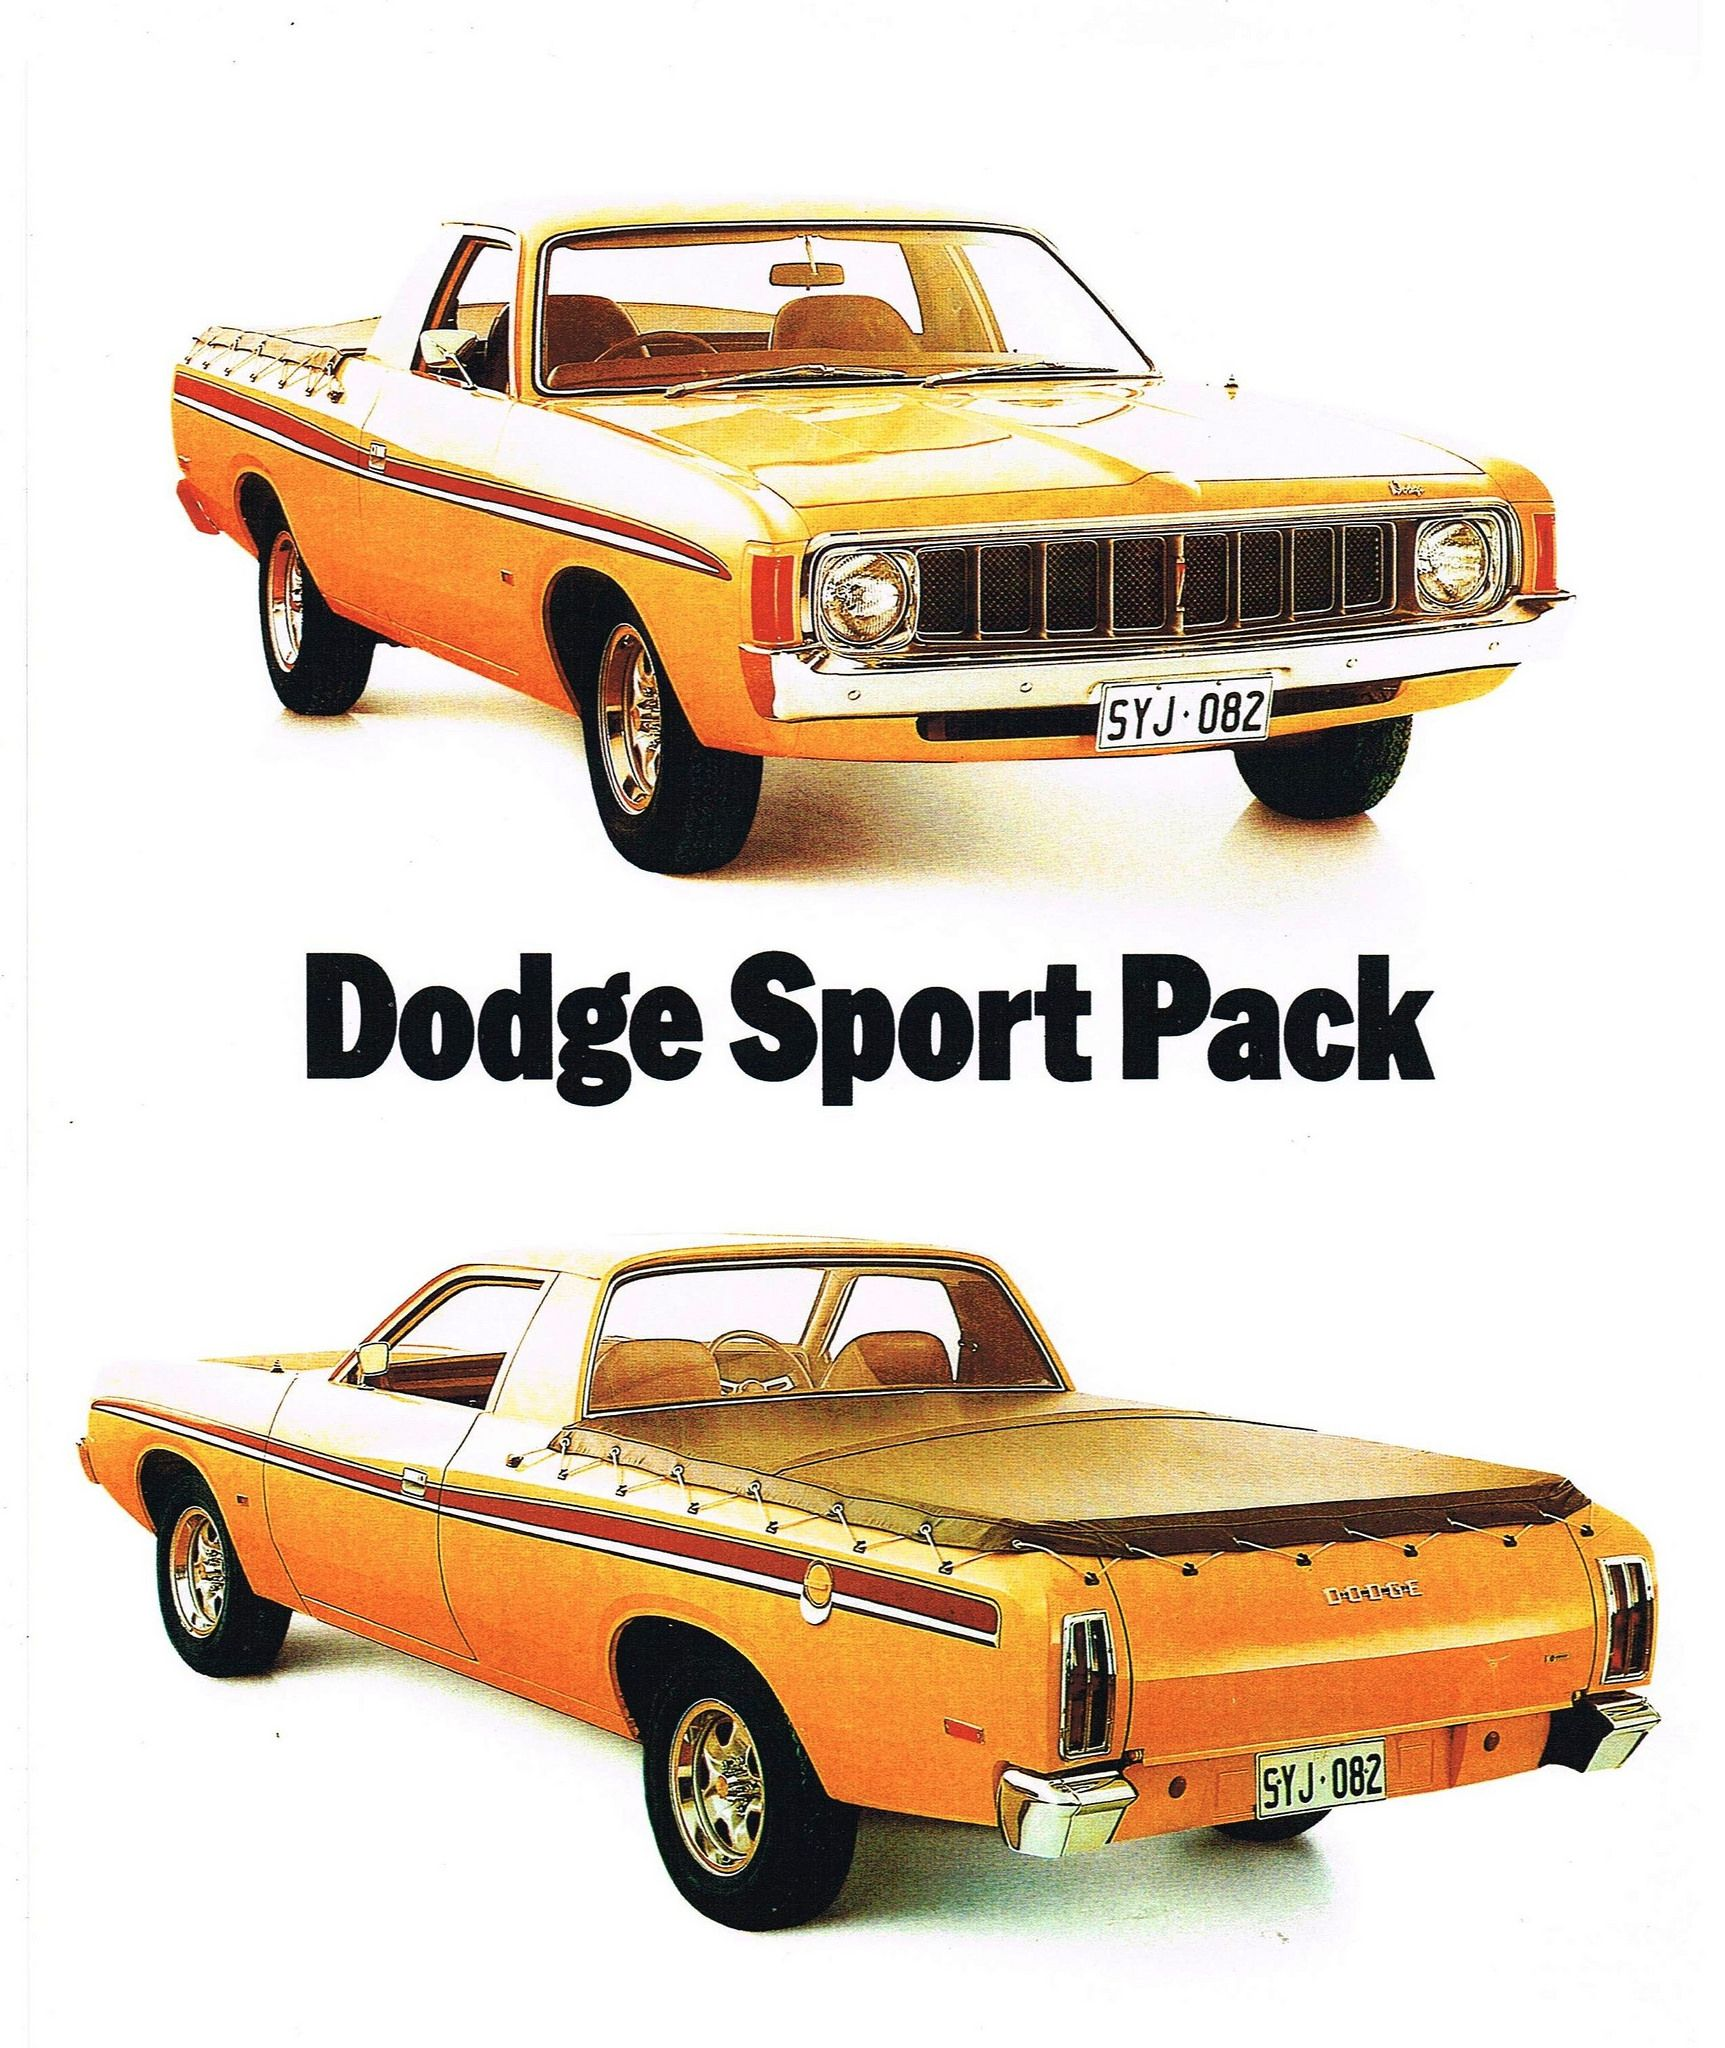 Ute Dodge Sport Pack